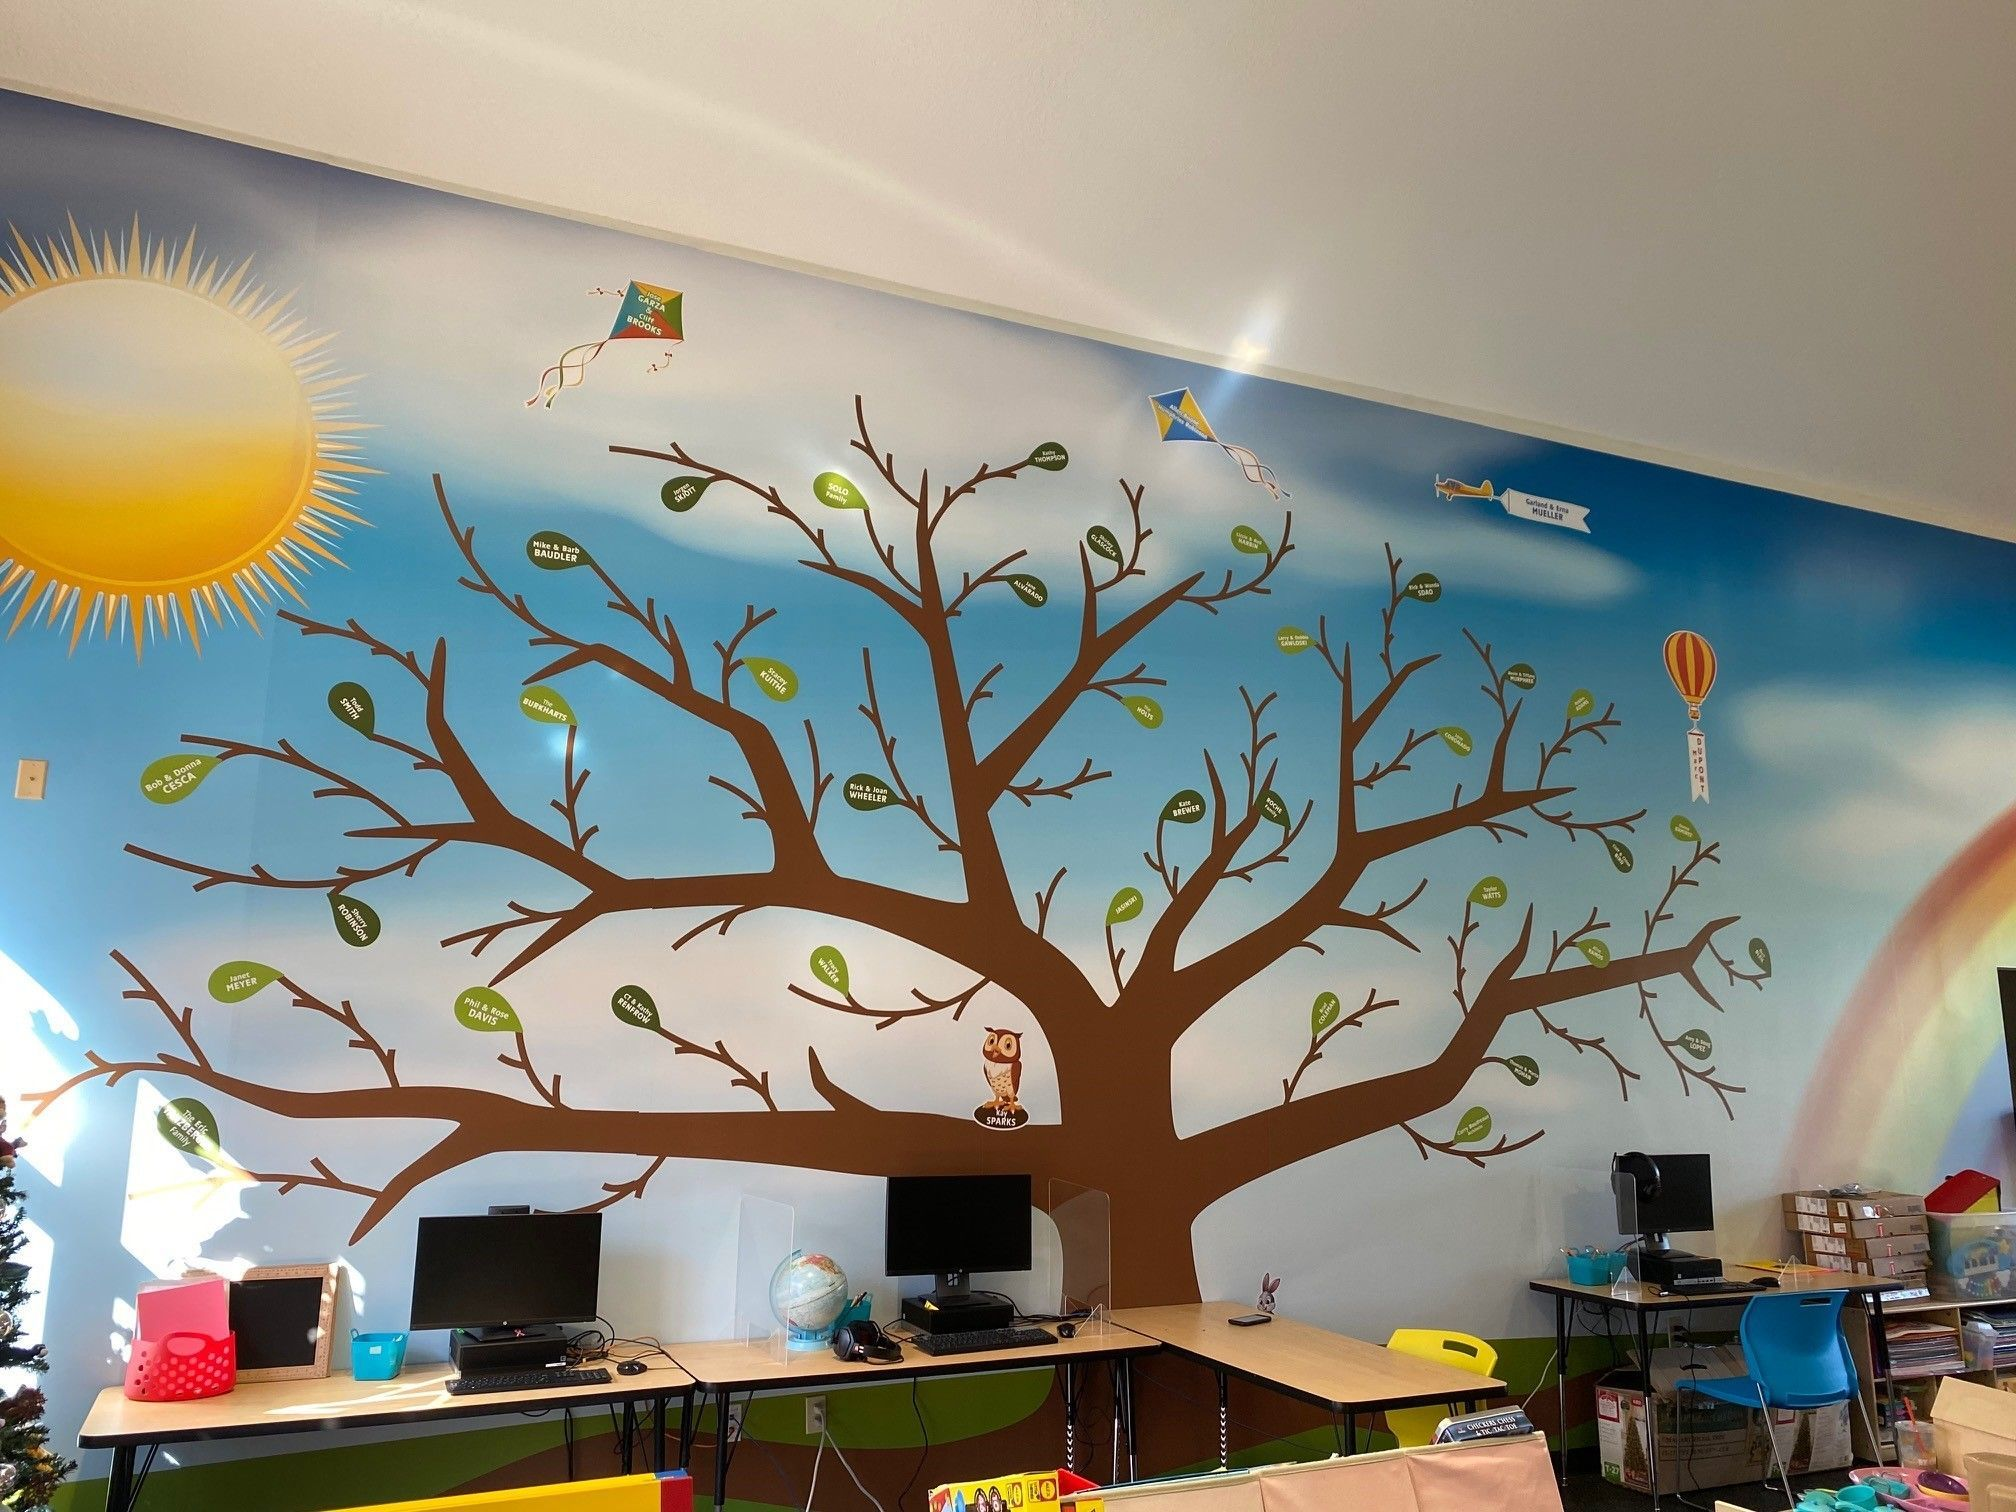 Build a Tree of Hope